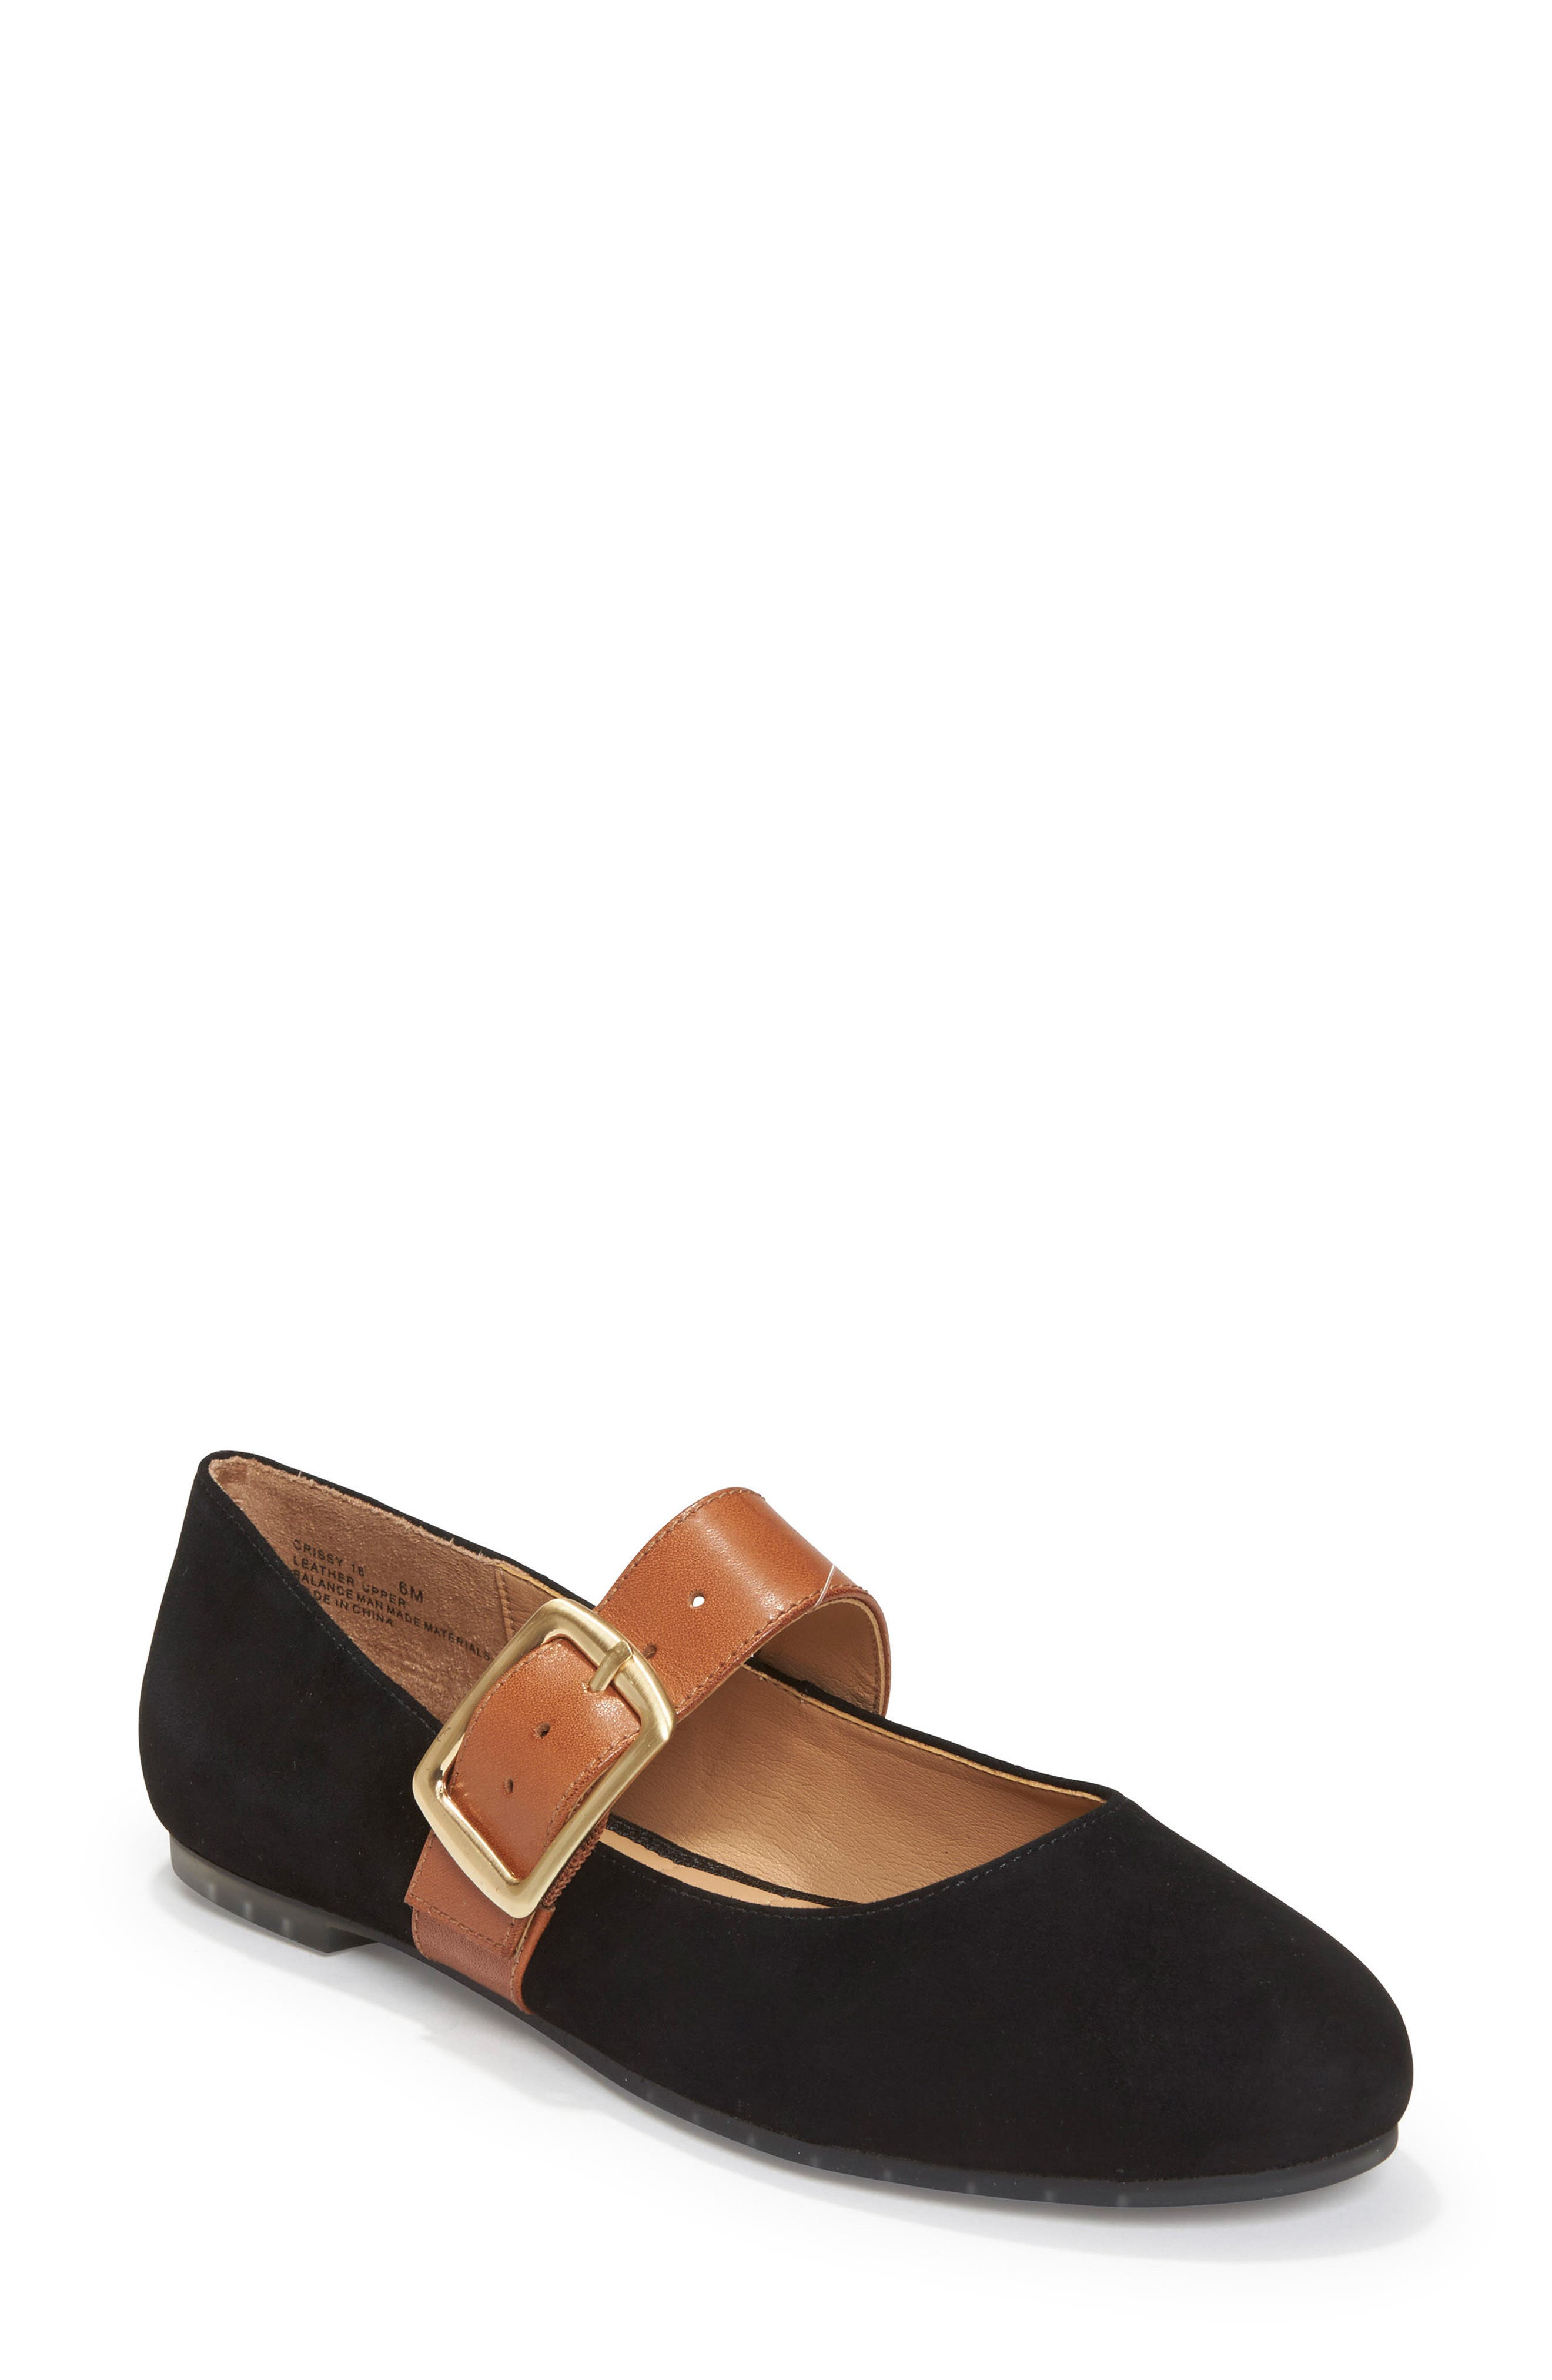 Crissy Mary Jane Flat,                         Main,                         color, Black Suede